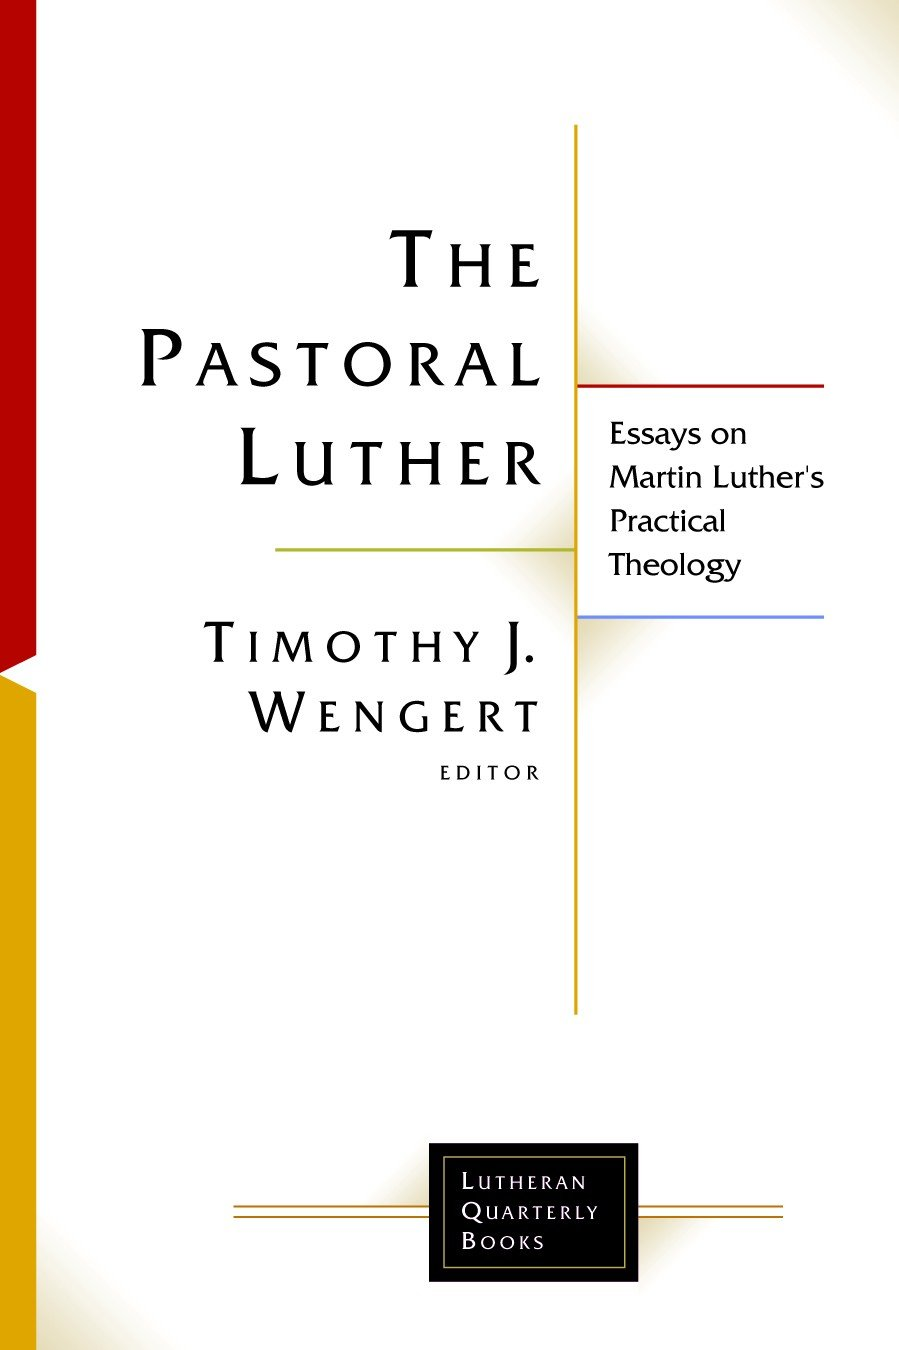 the pastoral luther essays on martin luther s practical theology the pastoral luther essays on martin luther s practical theology lutheran quarterly books lqb timothy j wengert 9780802863515 com books